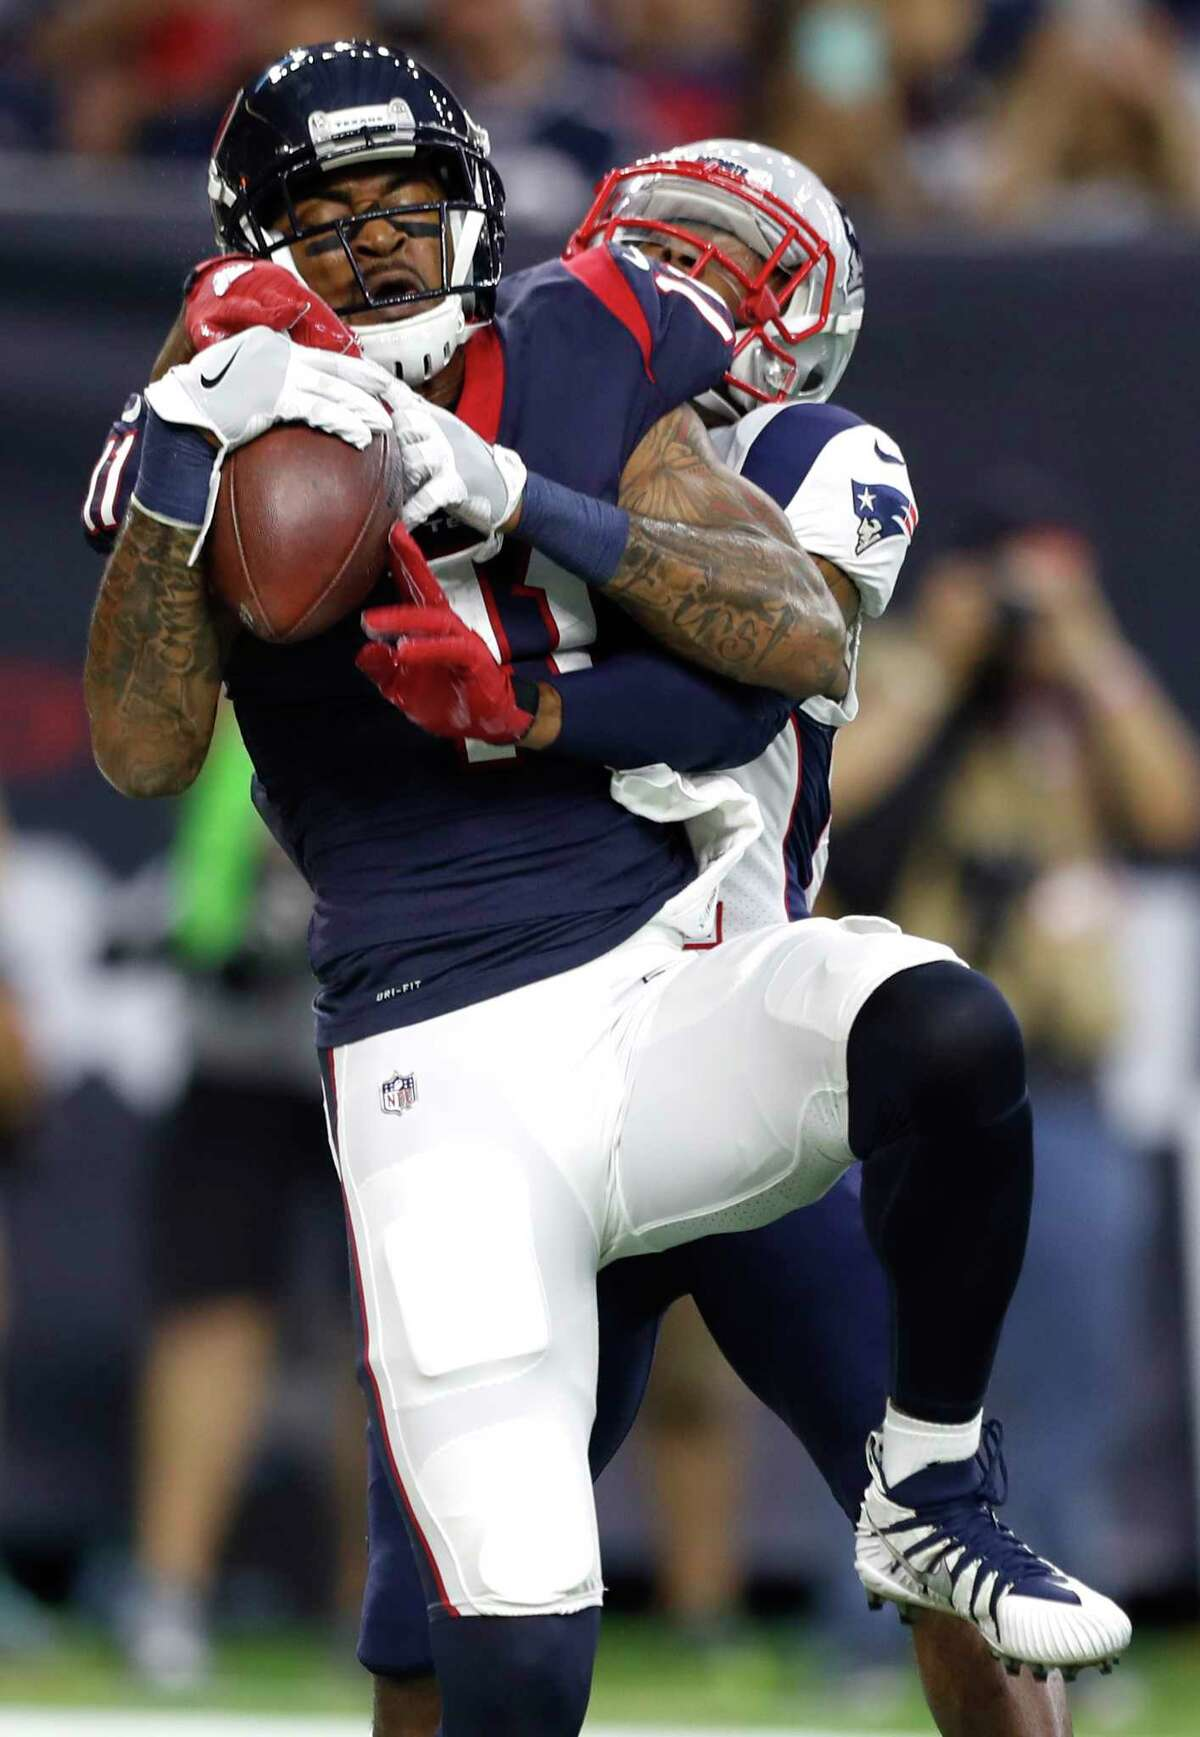 Texans wide receiver Jaelen Strong (11) gets the better of Patriots cornerback Malcolm Butler on a 2-yard TD catch Saturday night at NRG Stadium.